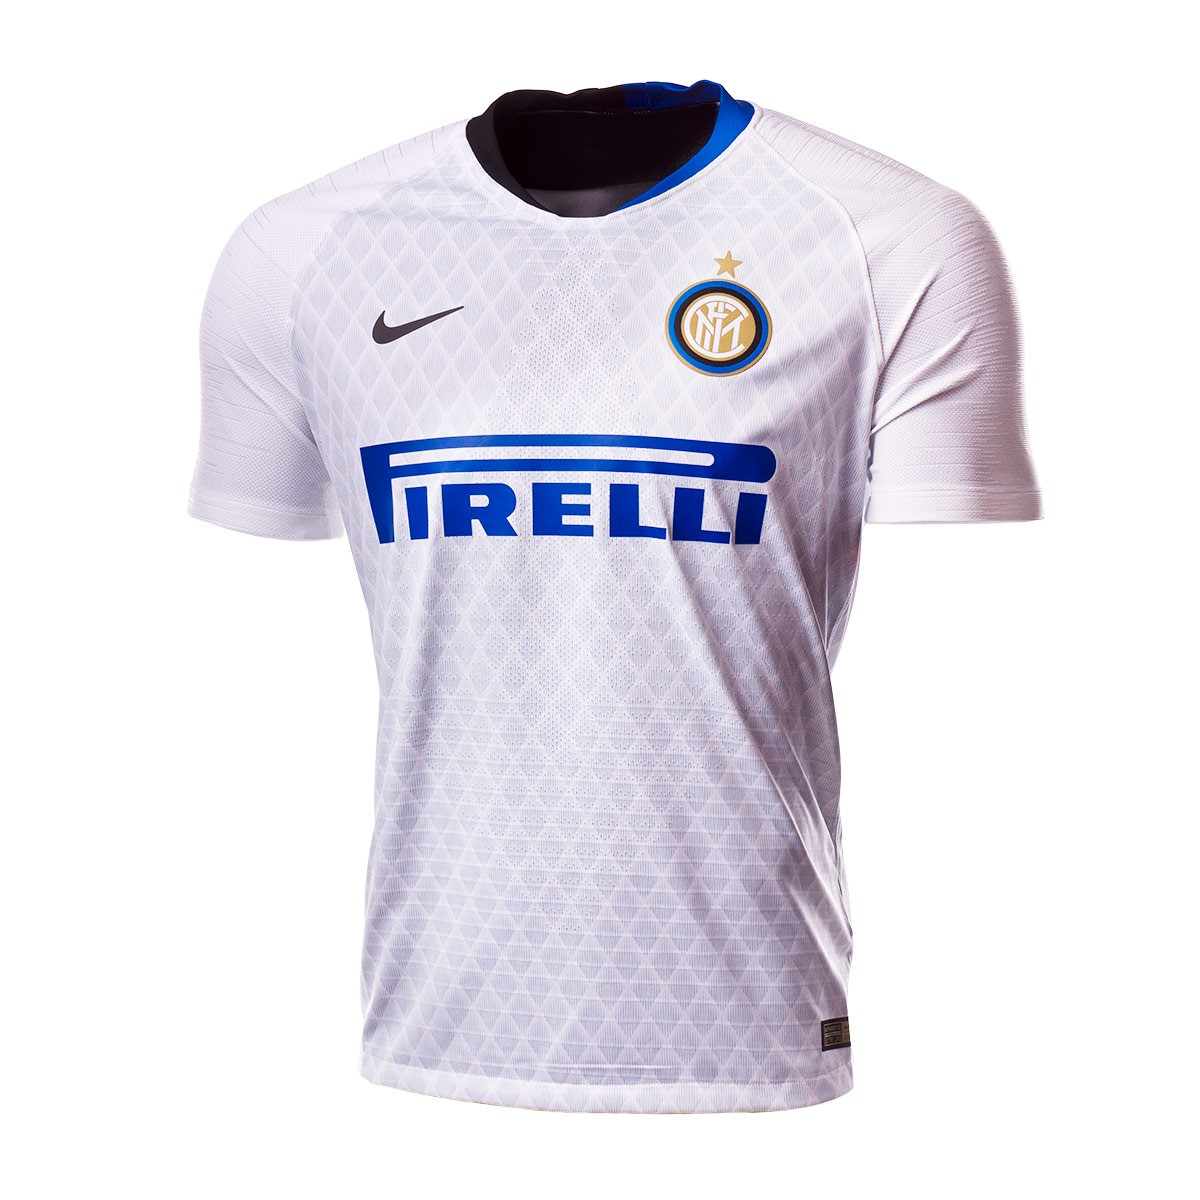 reputable site b2263 ed1b4 inter milan away jersey